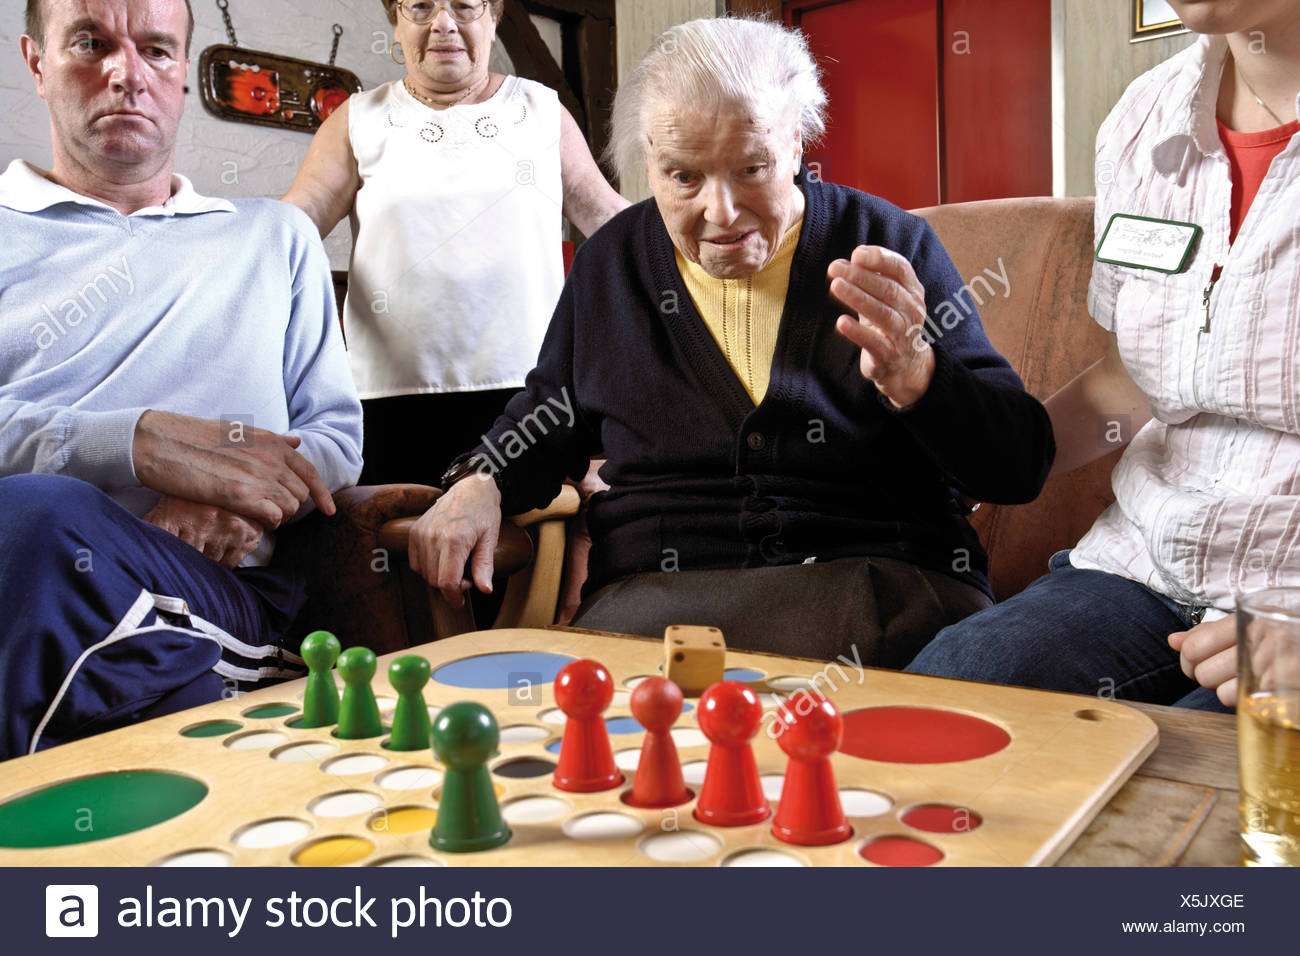 Nurses And Residents Of An Old Age Home Or Nursing Home Playing